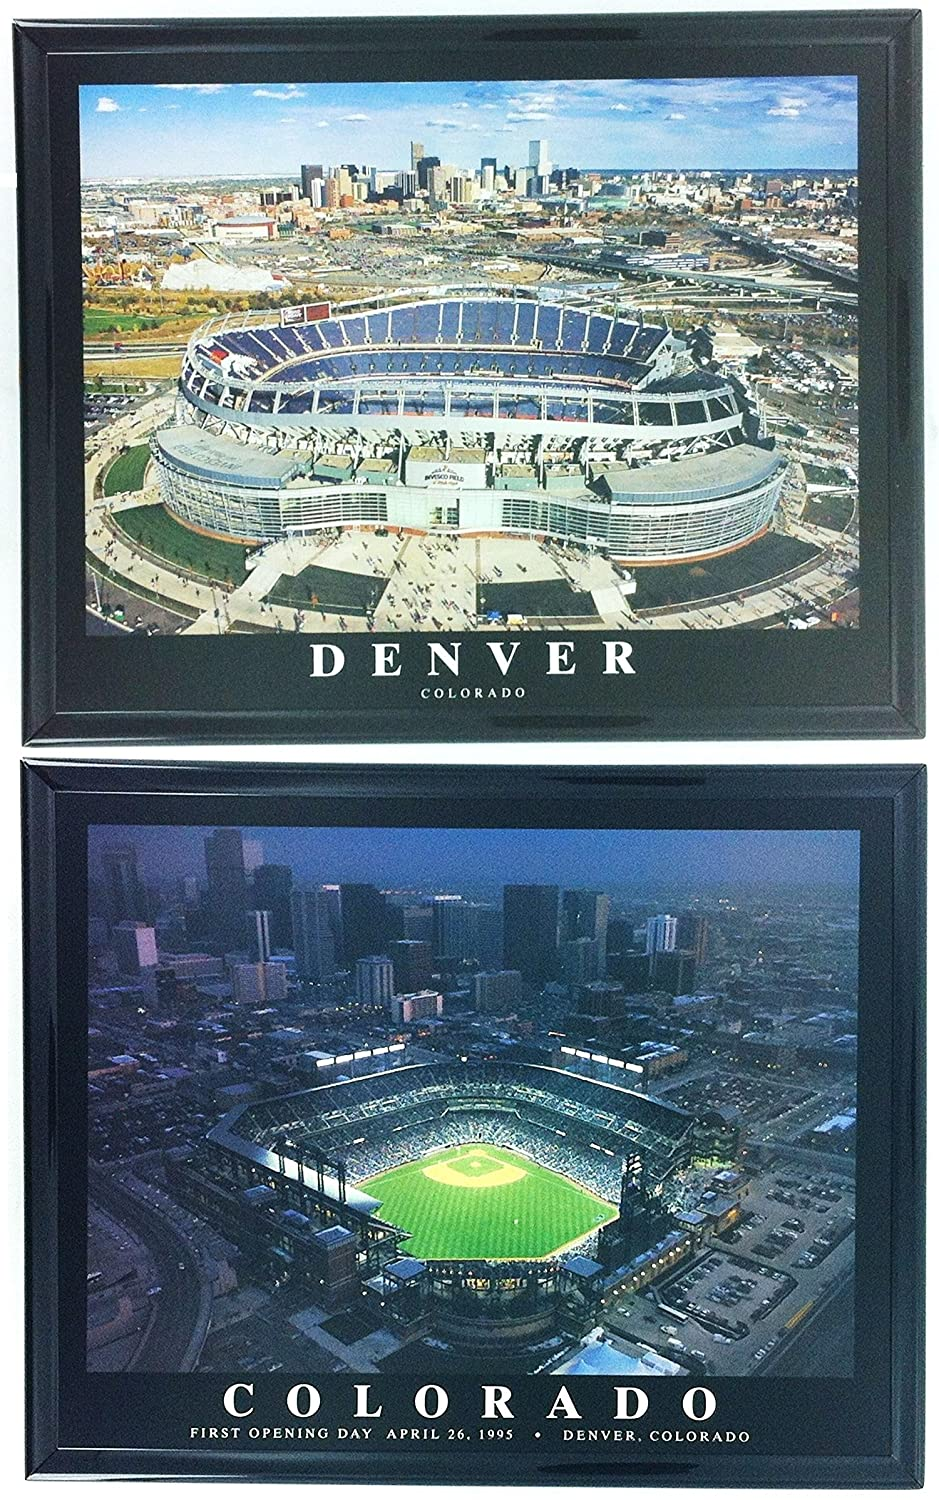 Denver Broncos Sports Authority Field at Mile High /& Rockies Coors Field Framed Aerial Photos